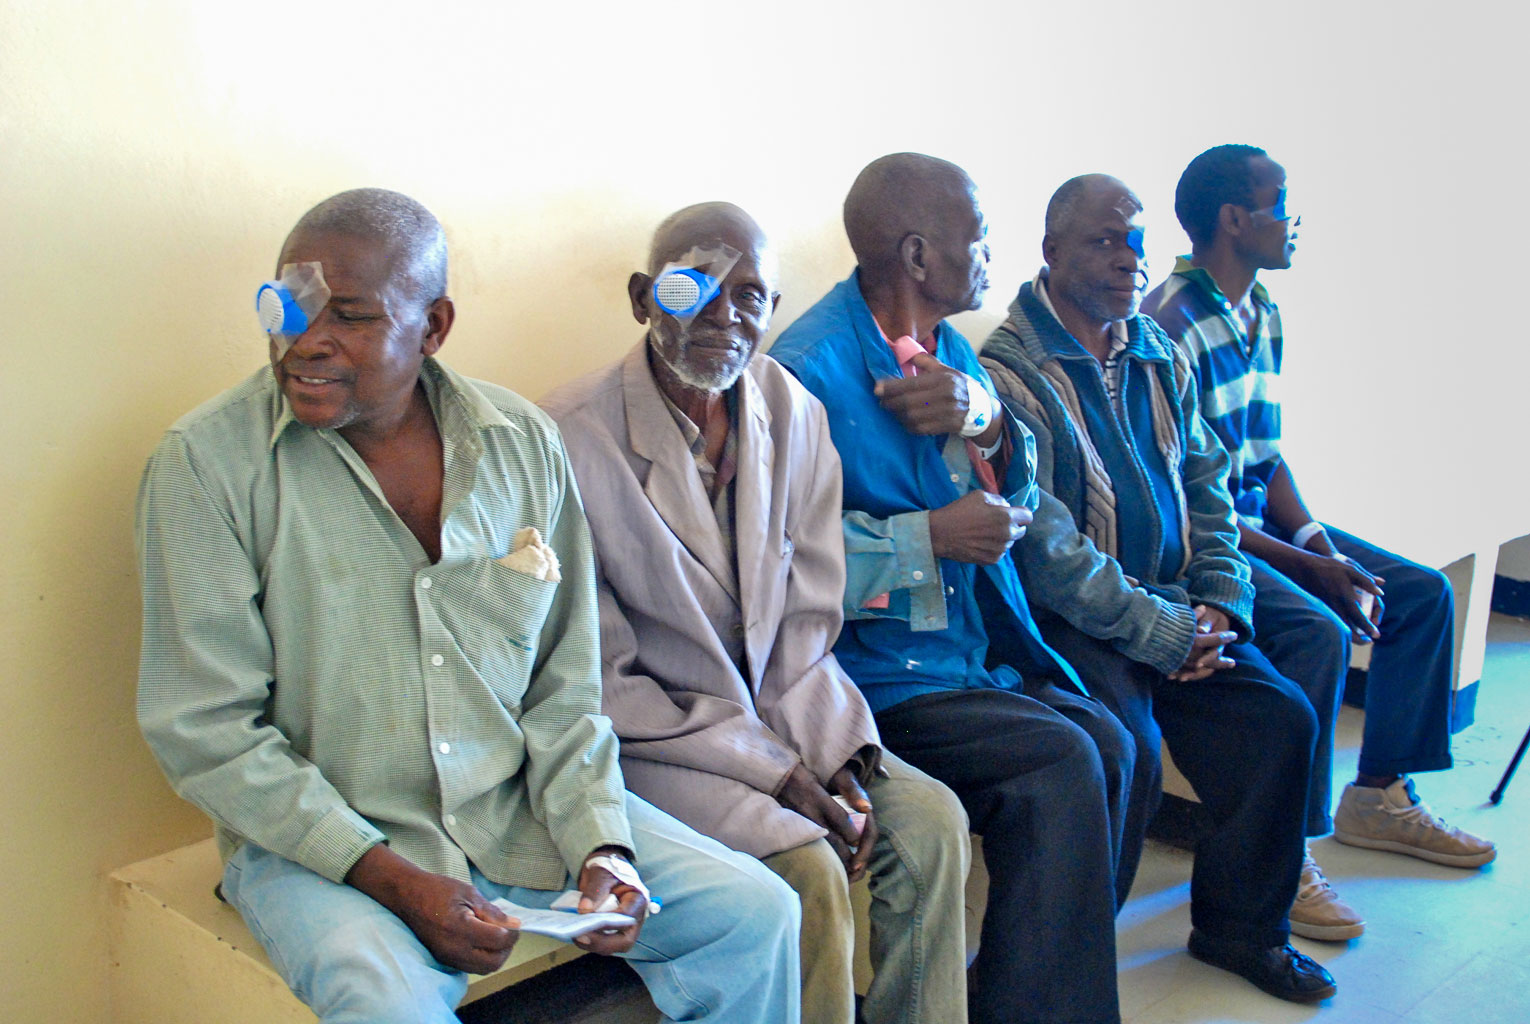 Post-surgery patients wait to have their eye bandages removed.